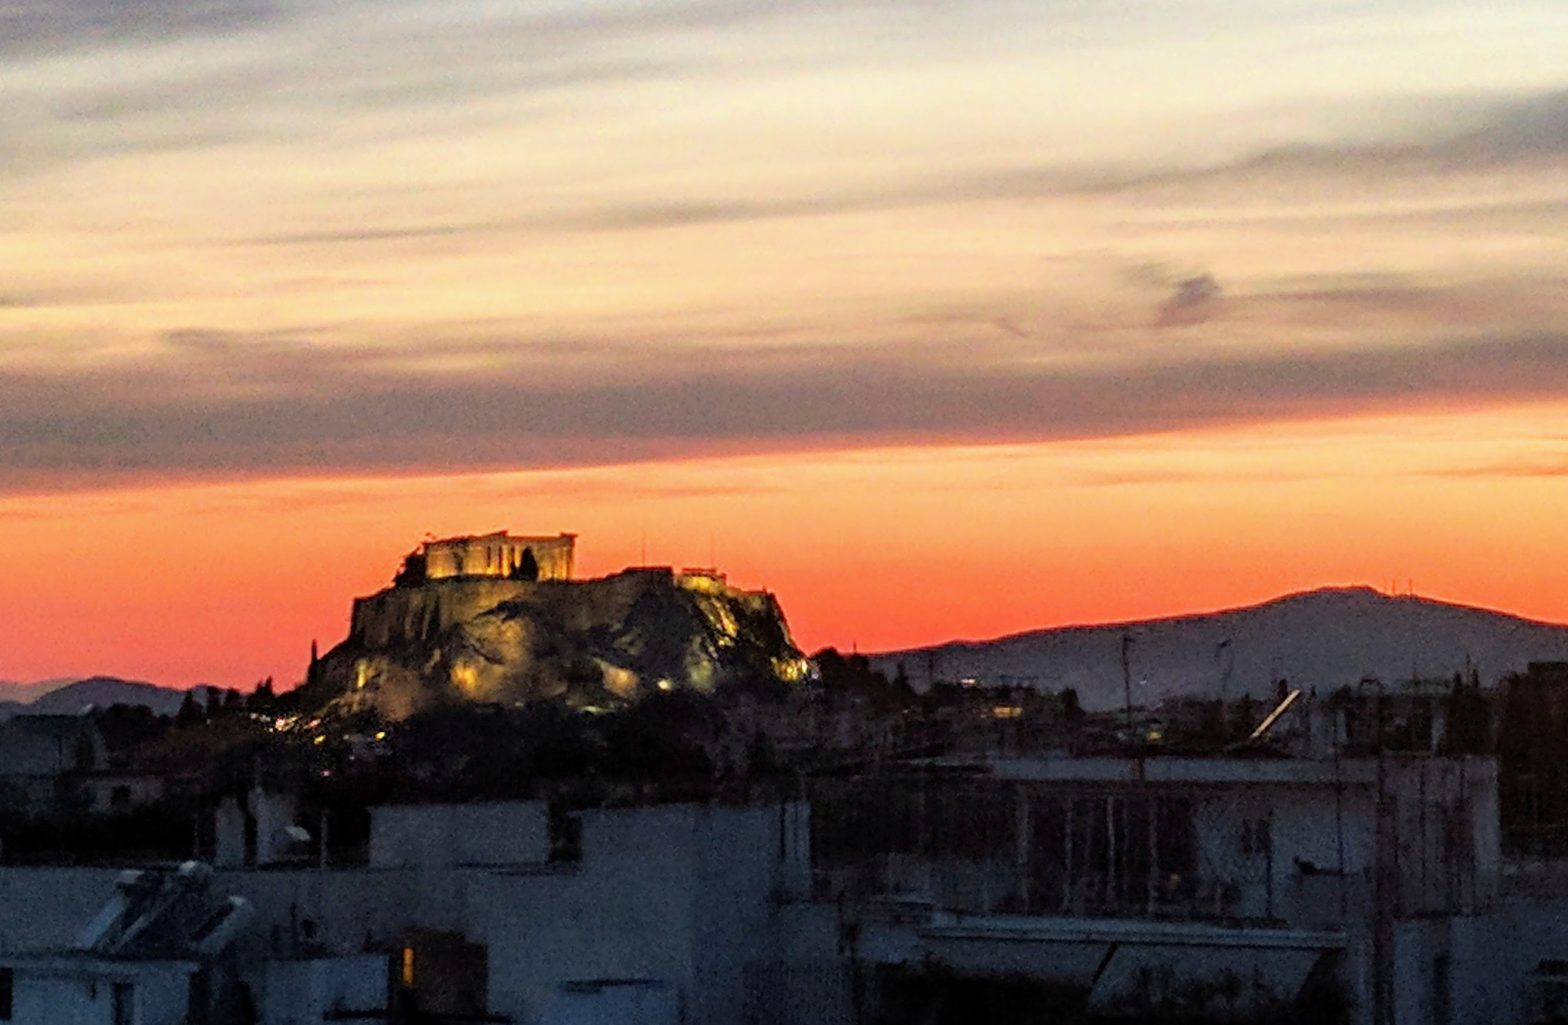 Sunset at the Acropolis in Greece